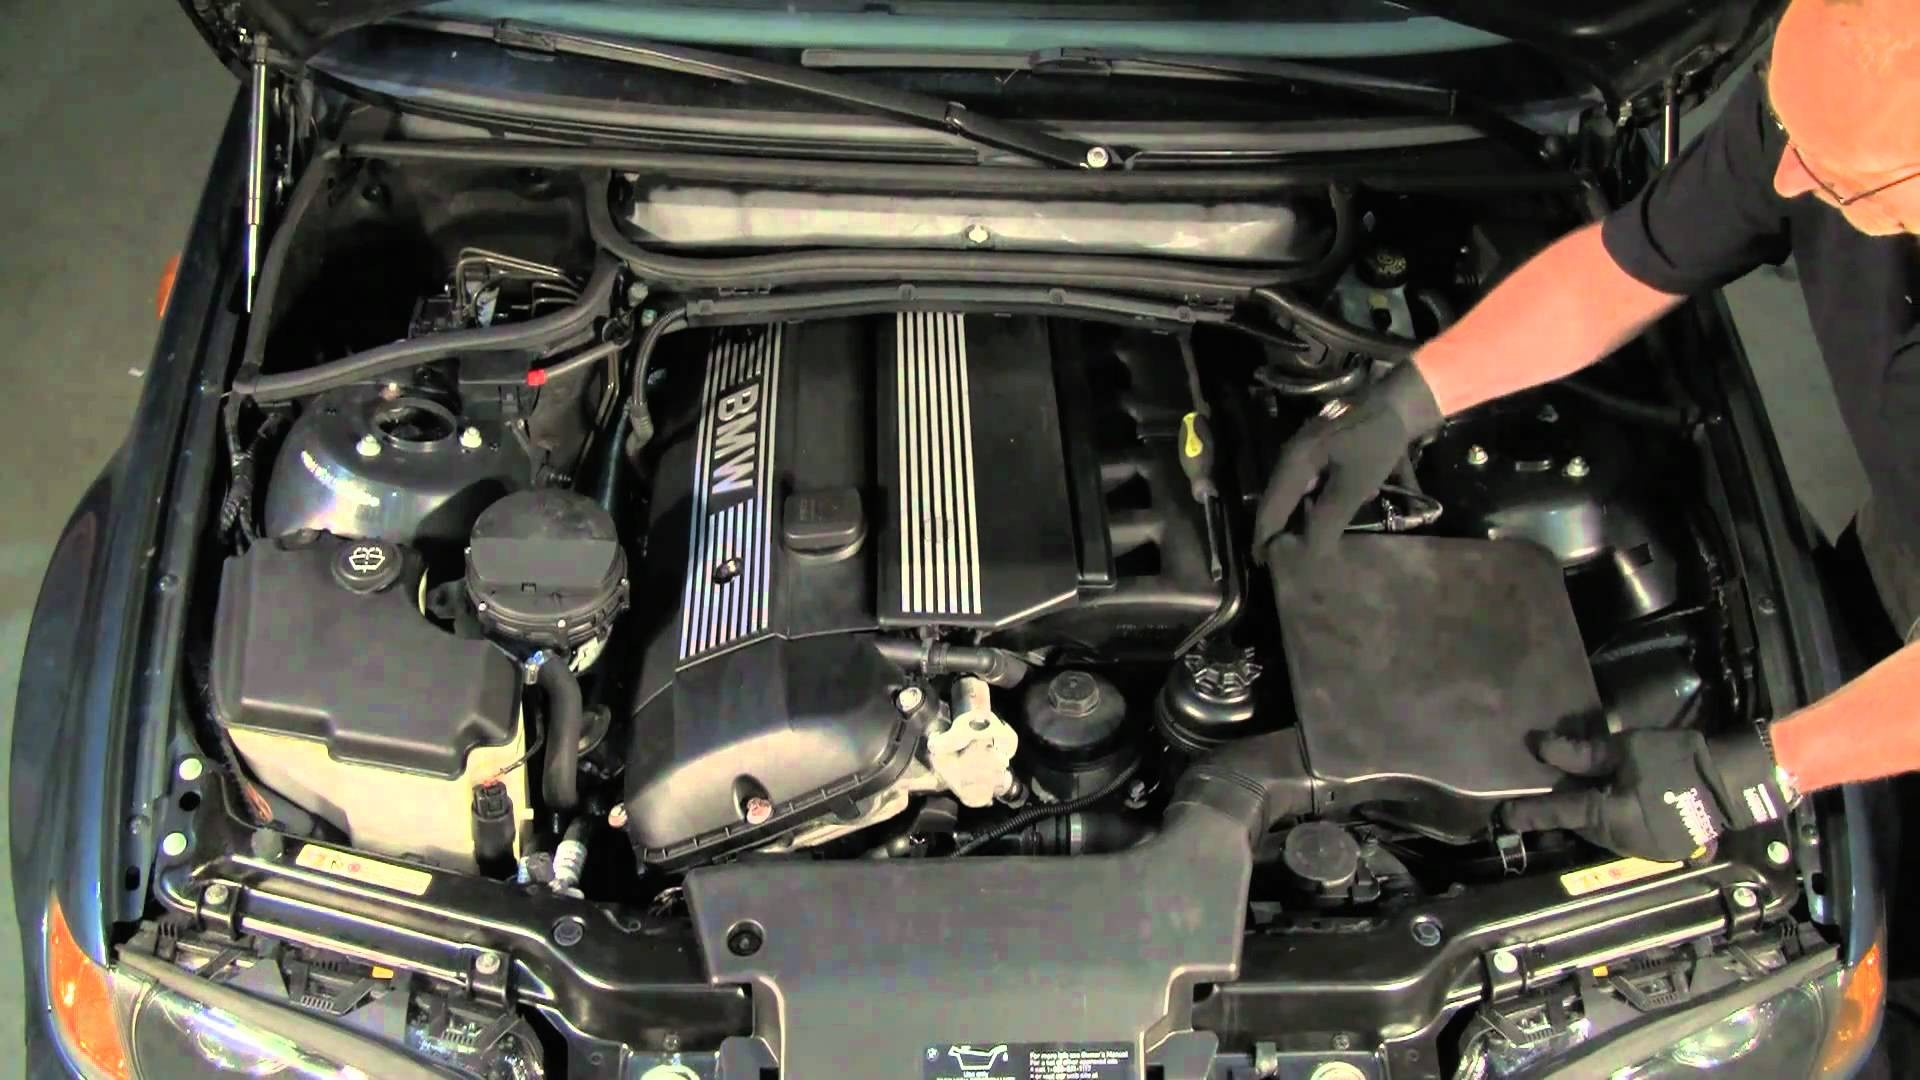 2000 Bmw 323i Engine Diagram Wiring Diagram Know Warehouse A Know Warehouse A Pasticceriagele It